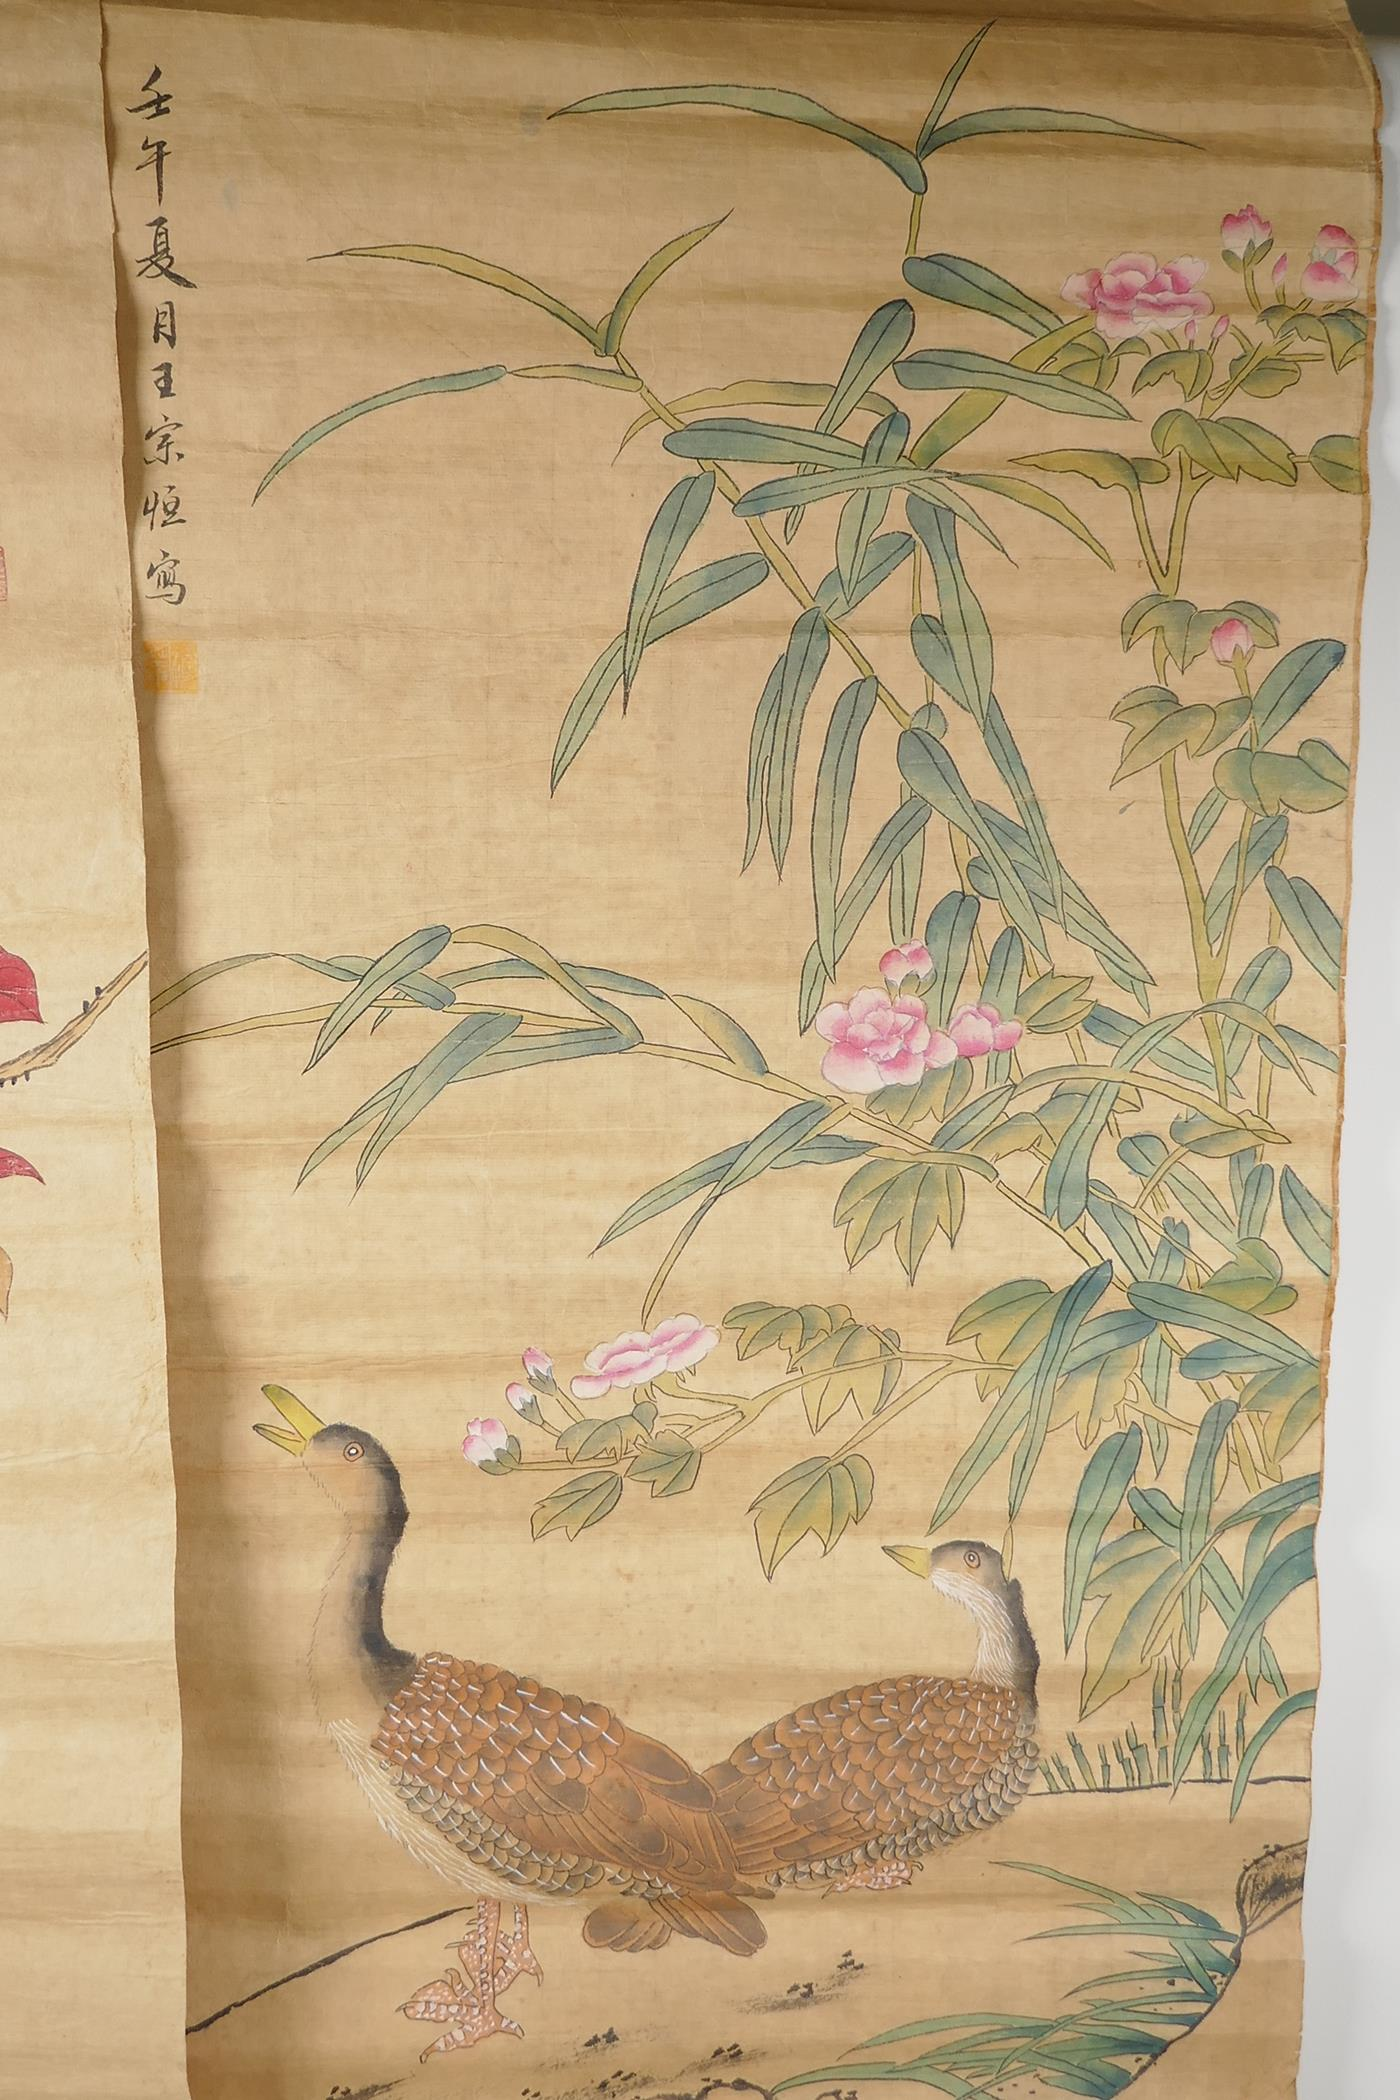 A Chinese watercolour scroll depicting waterfowl and flowers, and another similar with birds and - Image 2 of 3